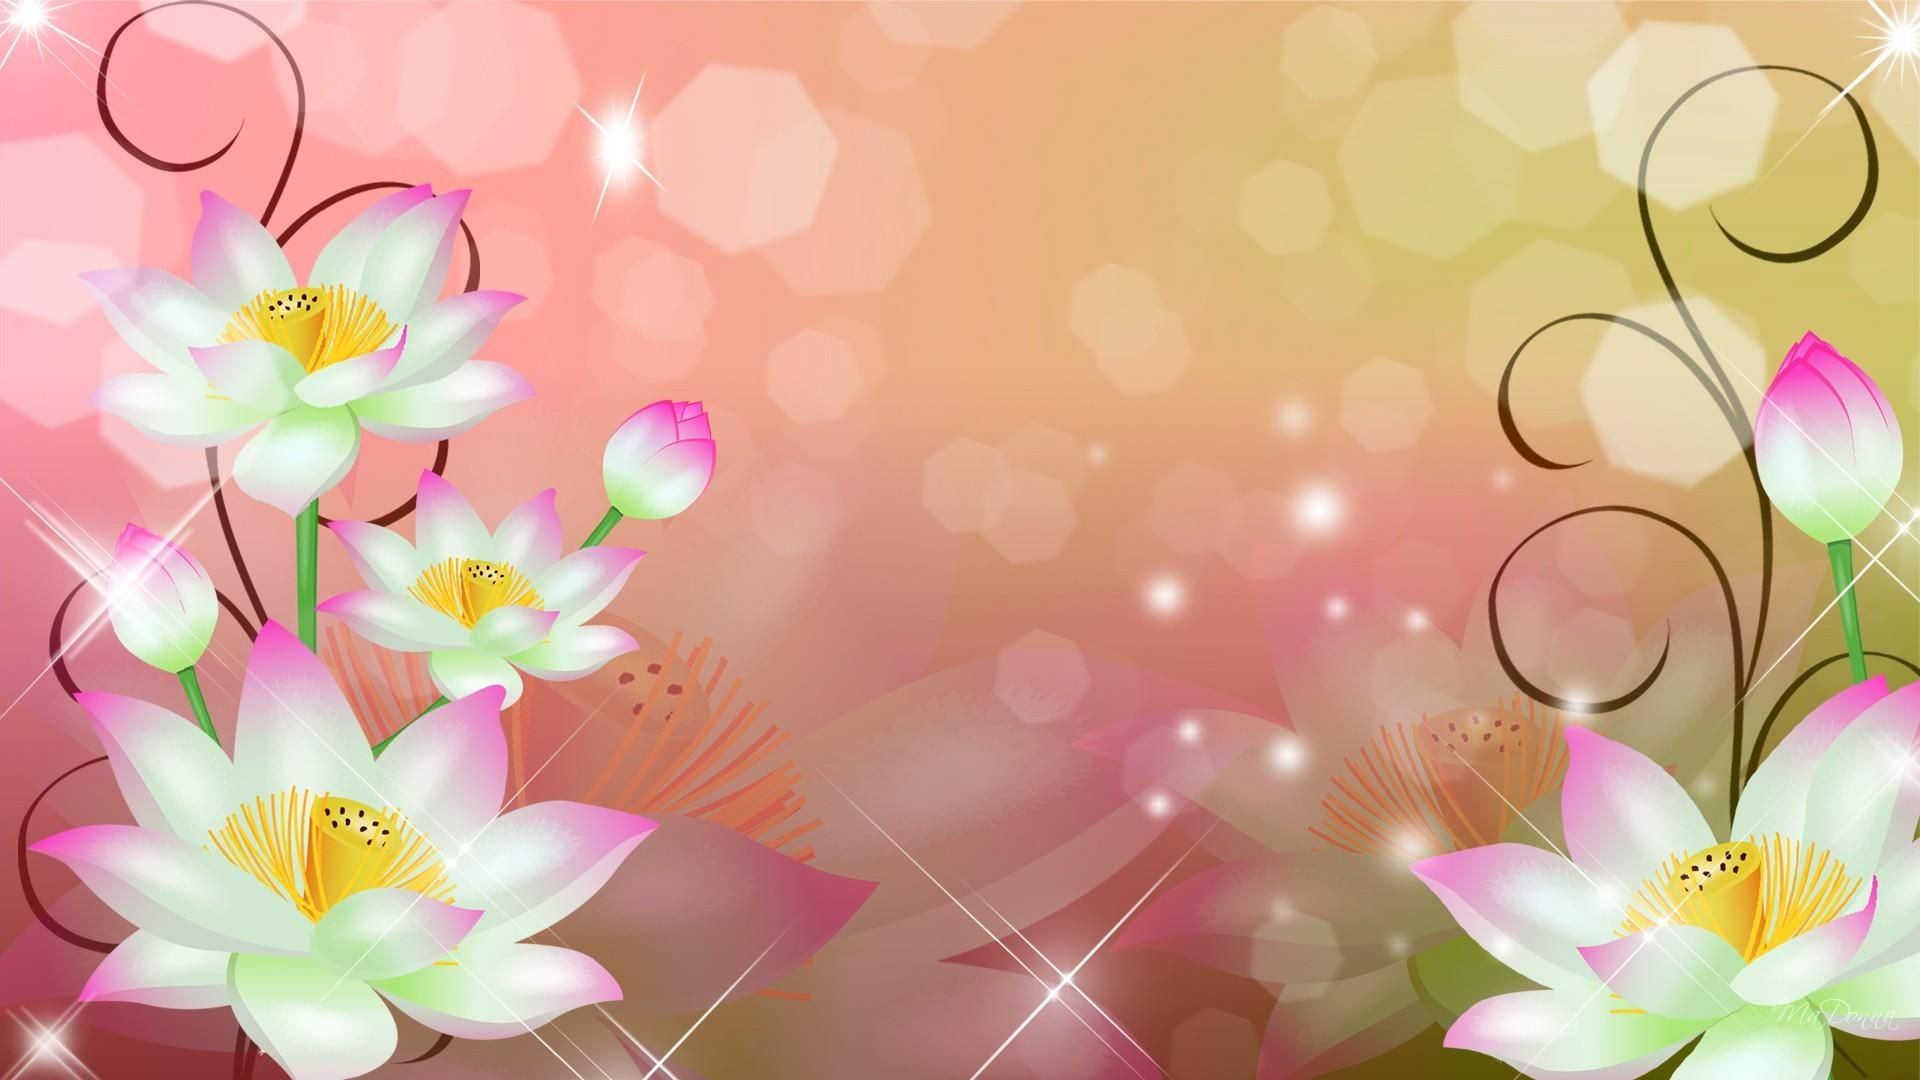 Animated-Abstract-Flowers-Picture-Wallpaper-HD-Free ...